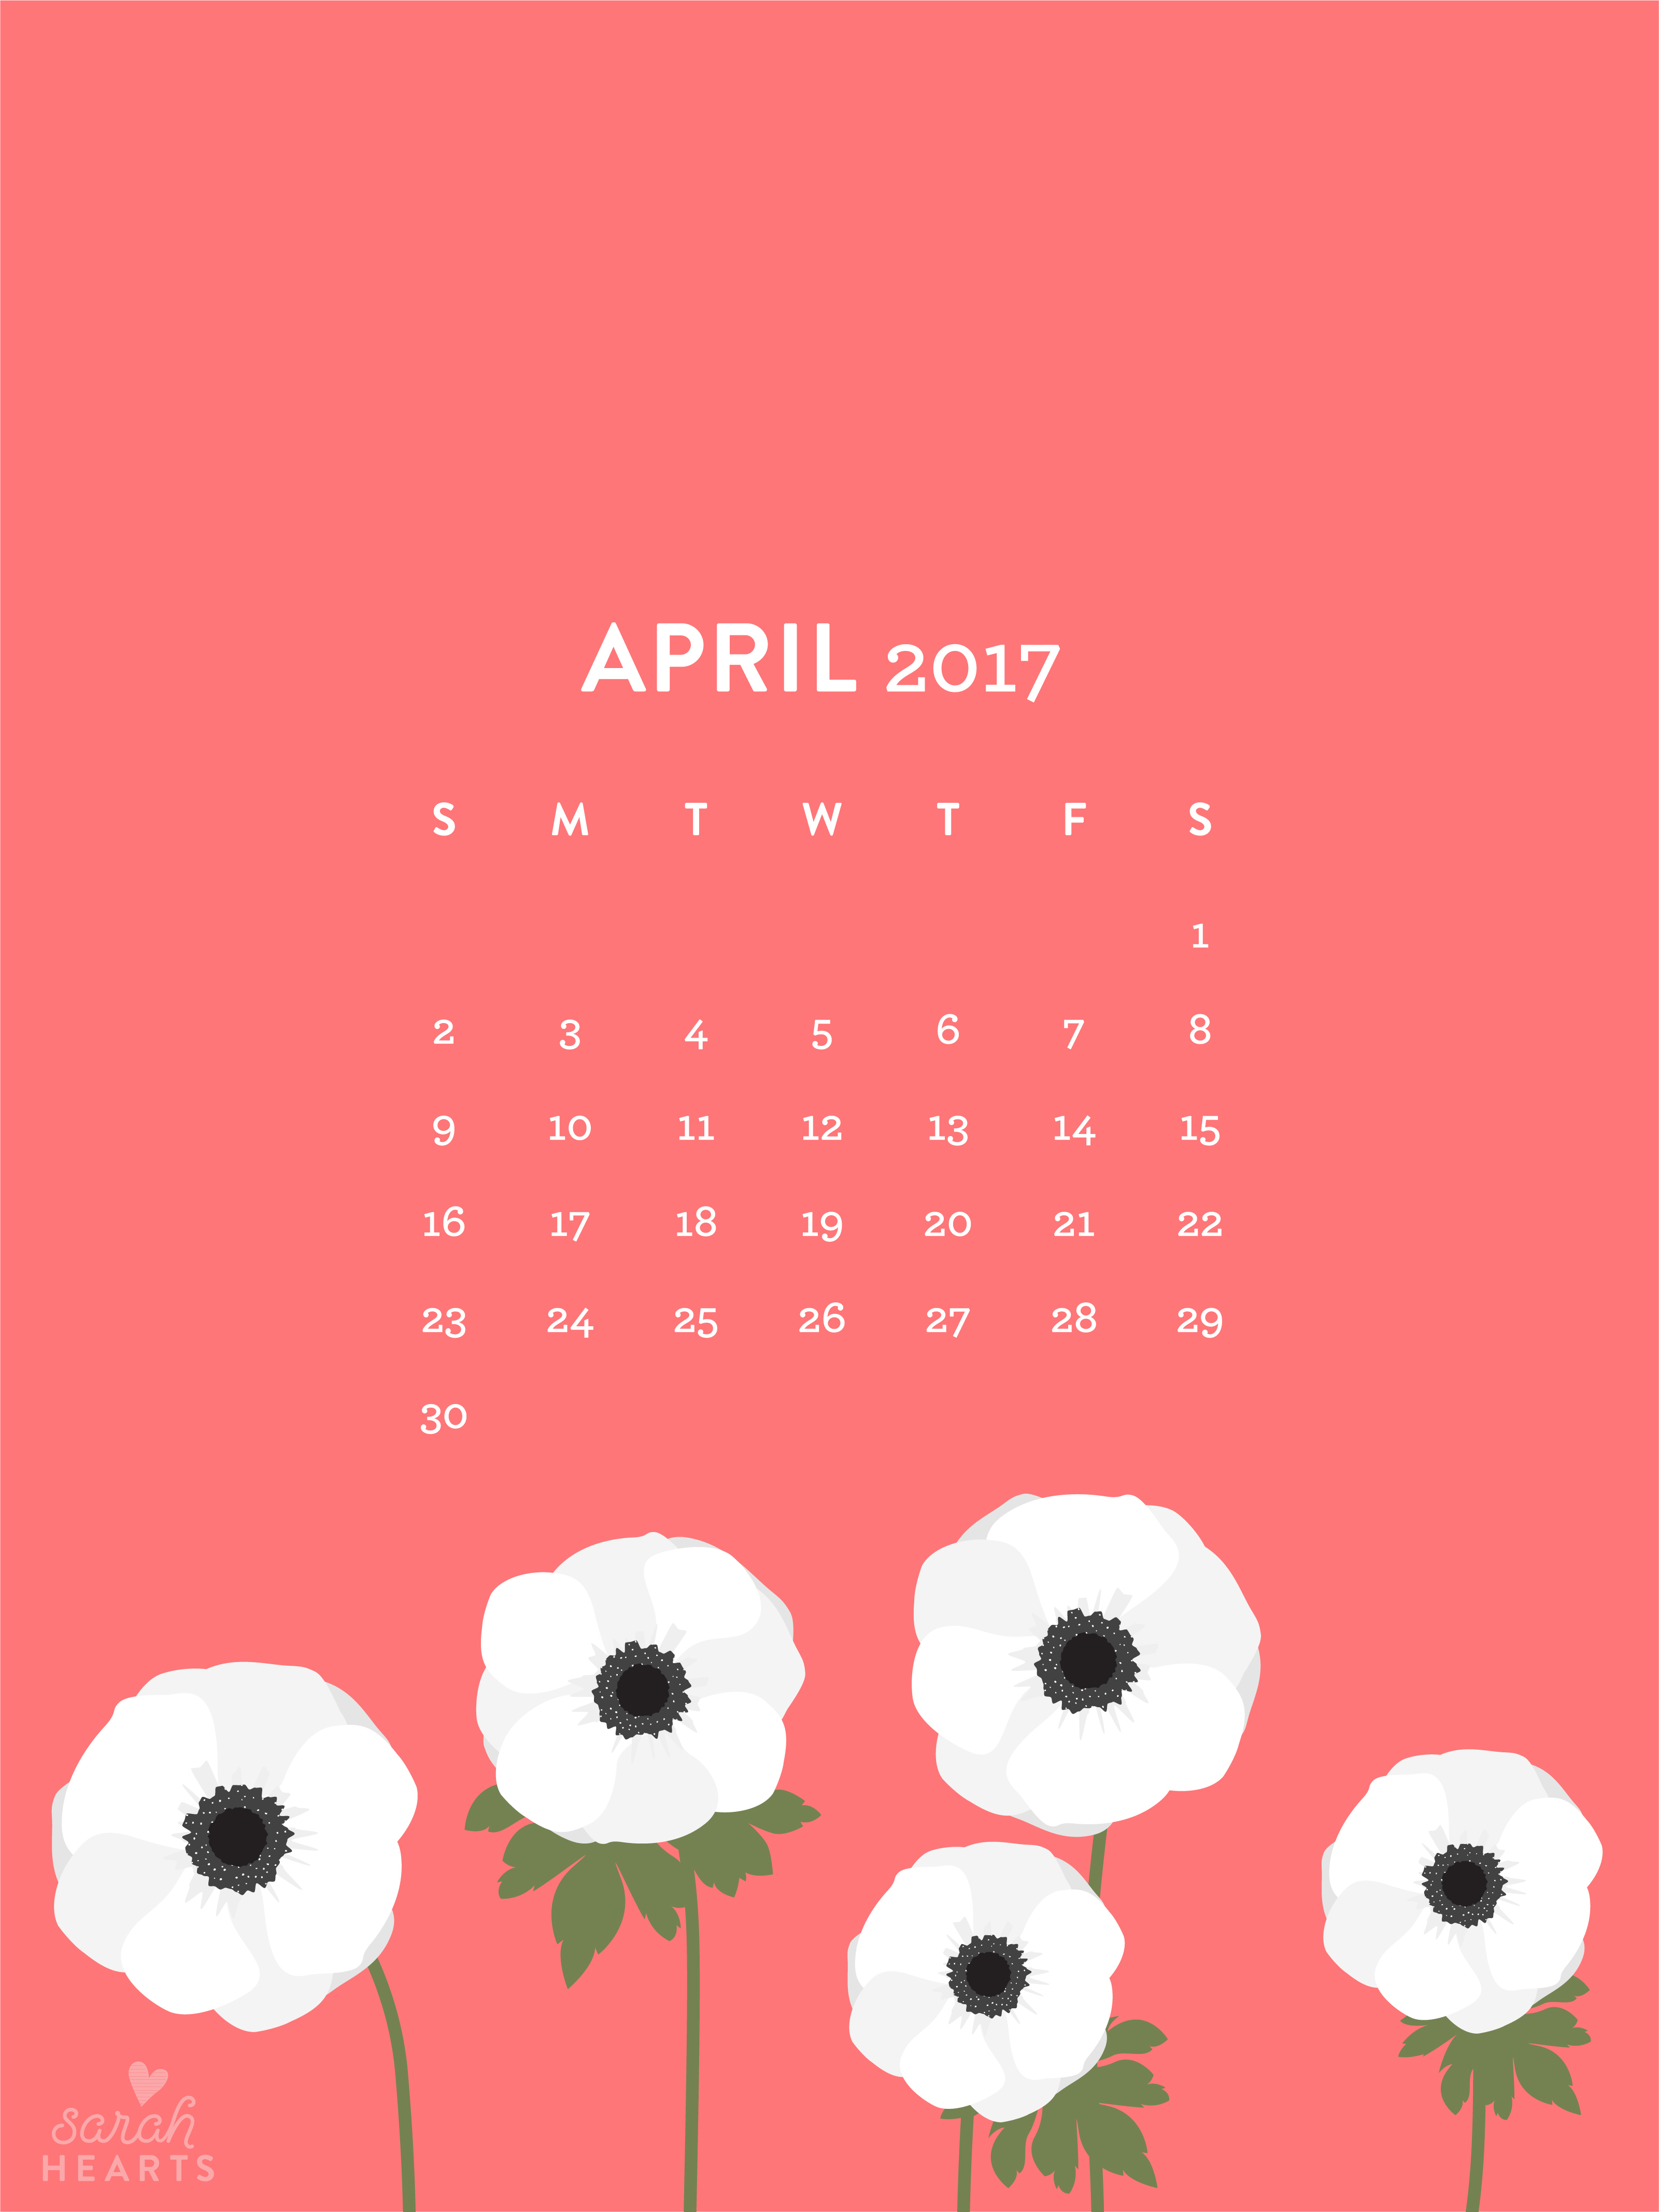 Calendar Wallpaper Ipad : White anemones april calendar wallpaper sarah hearts